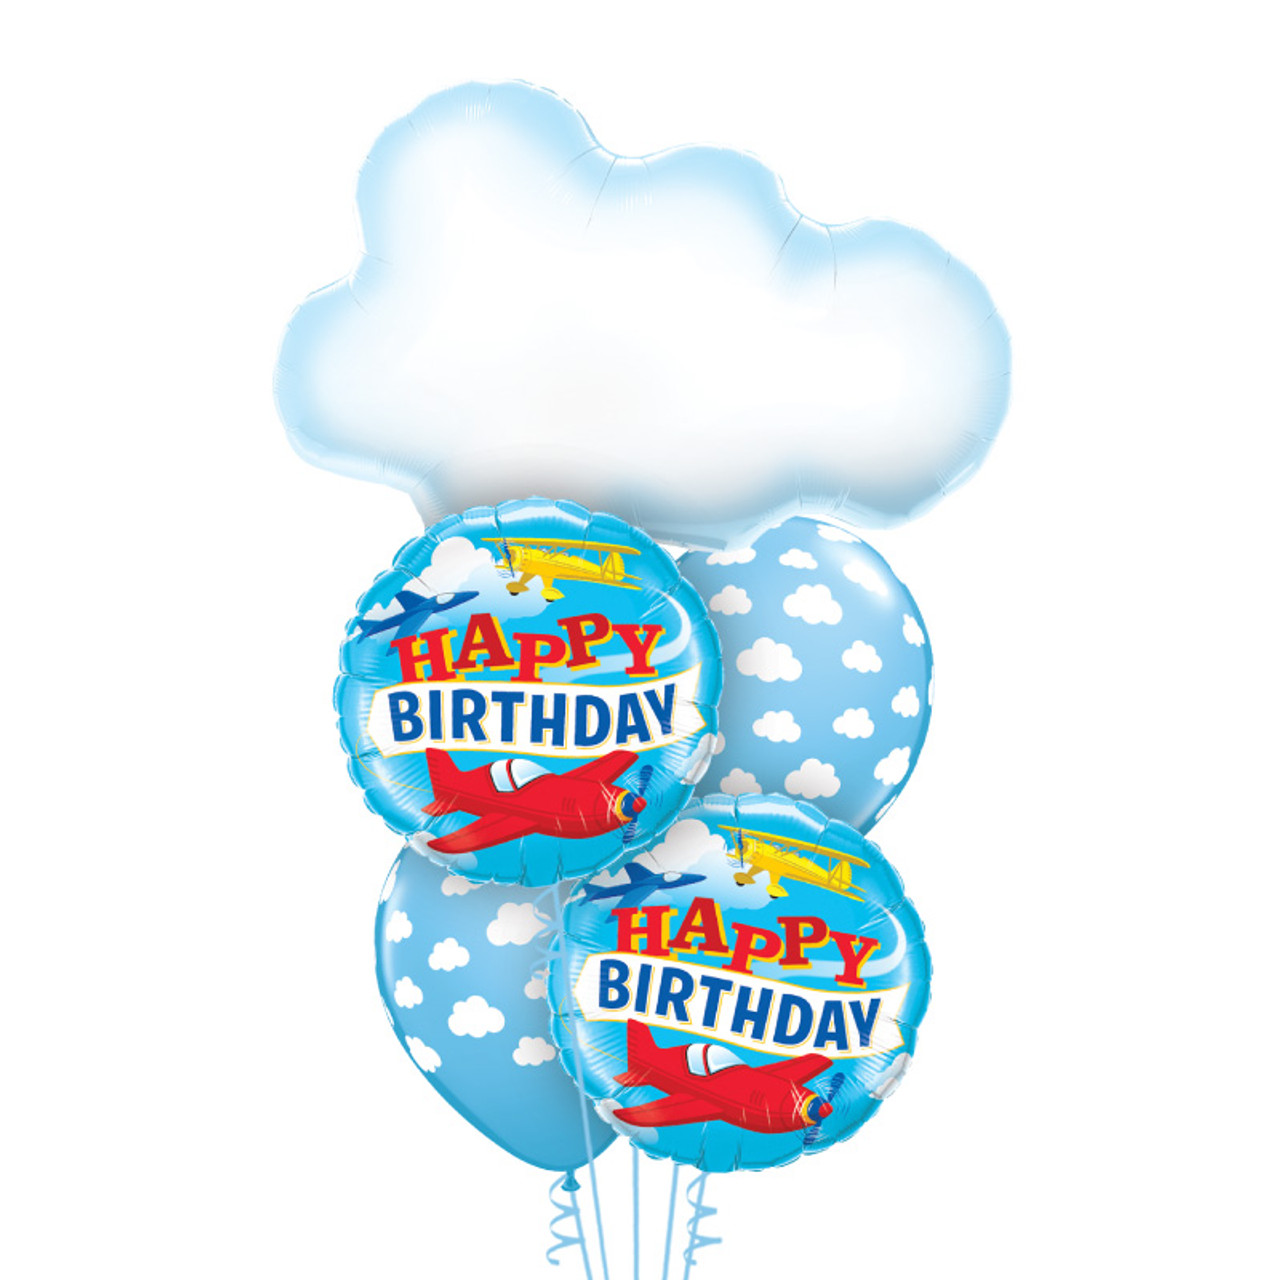 Party Flying High Above The Clouds Birthday Balloon Bouquet Give Fun